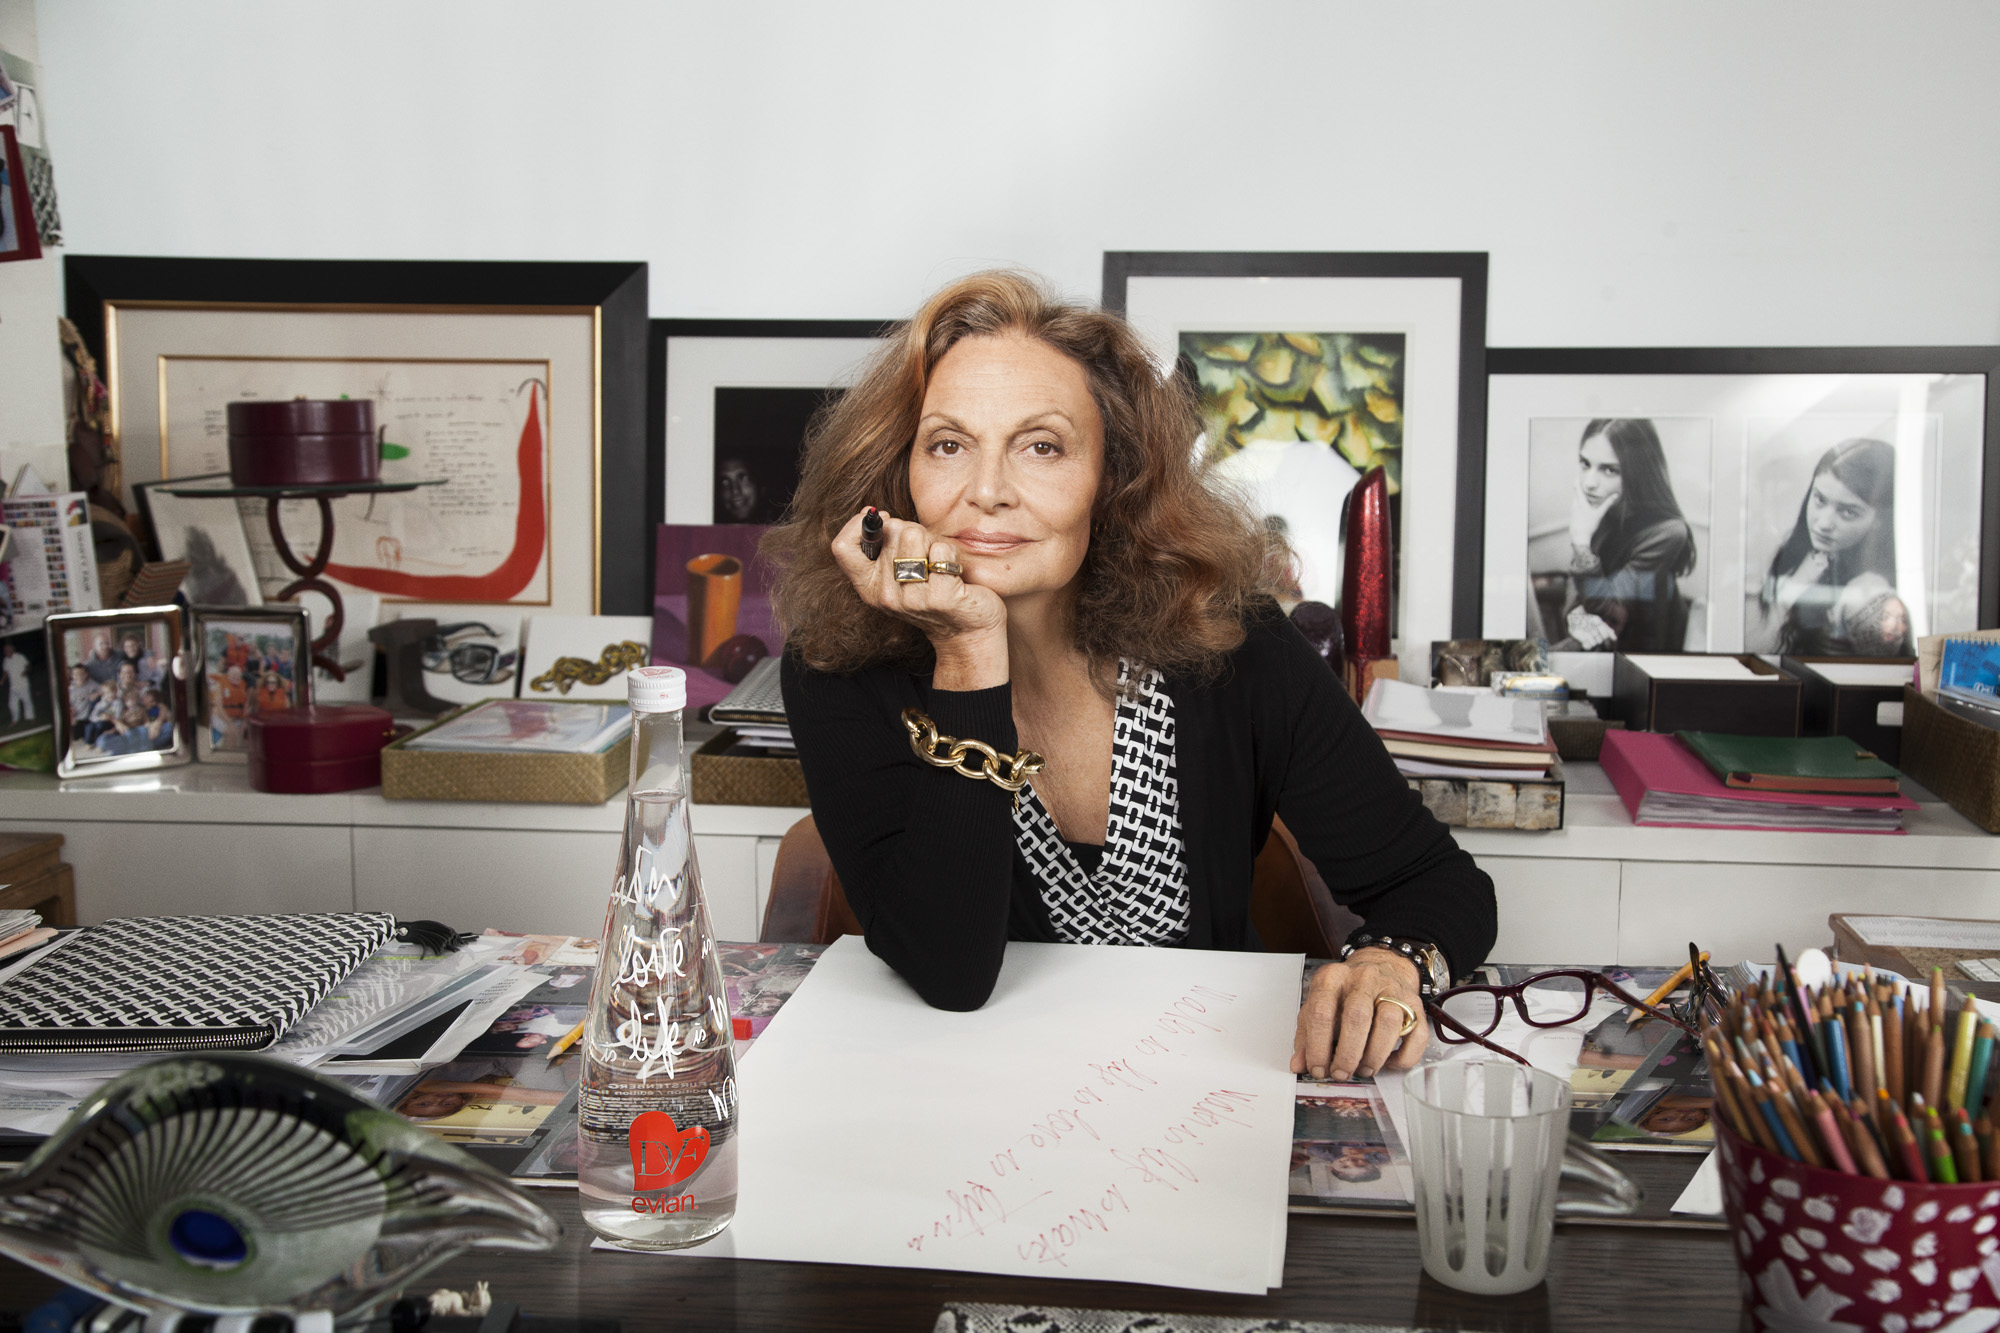 house of dvf diane von furstenberg penhouse tour inside celebrity homes new york penthouse office sneak peak better decorating bible blog